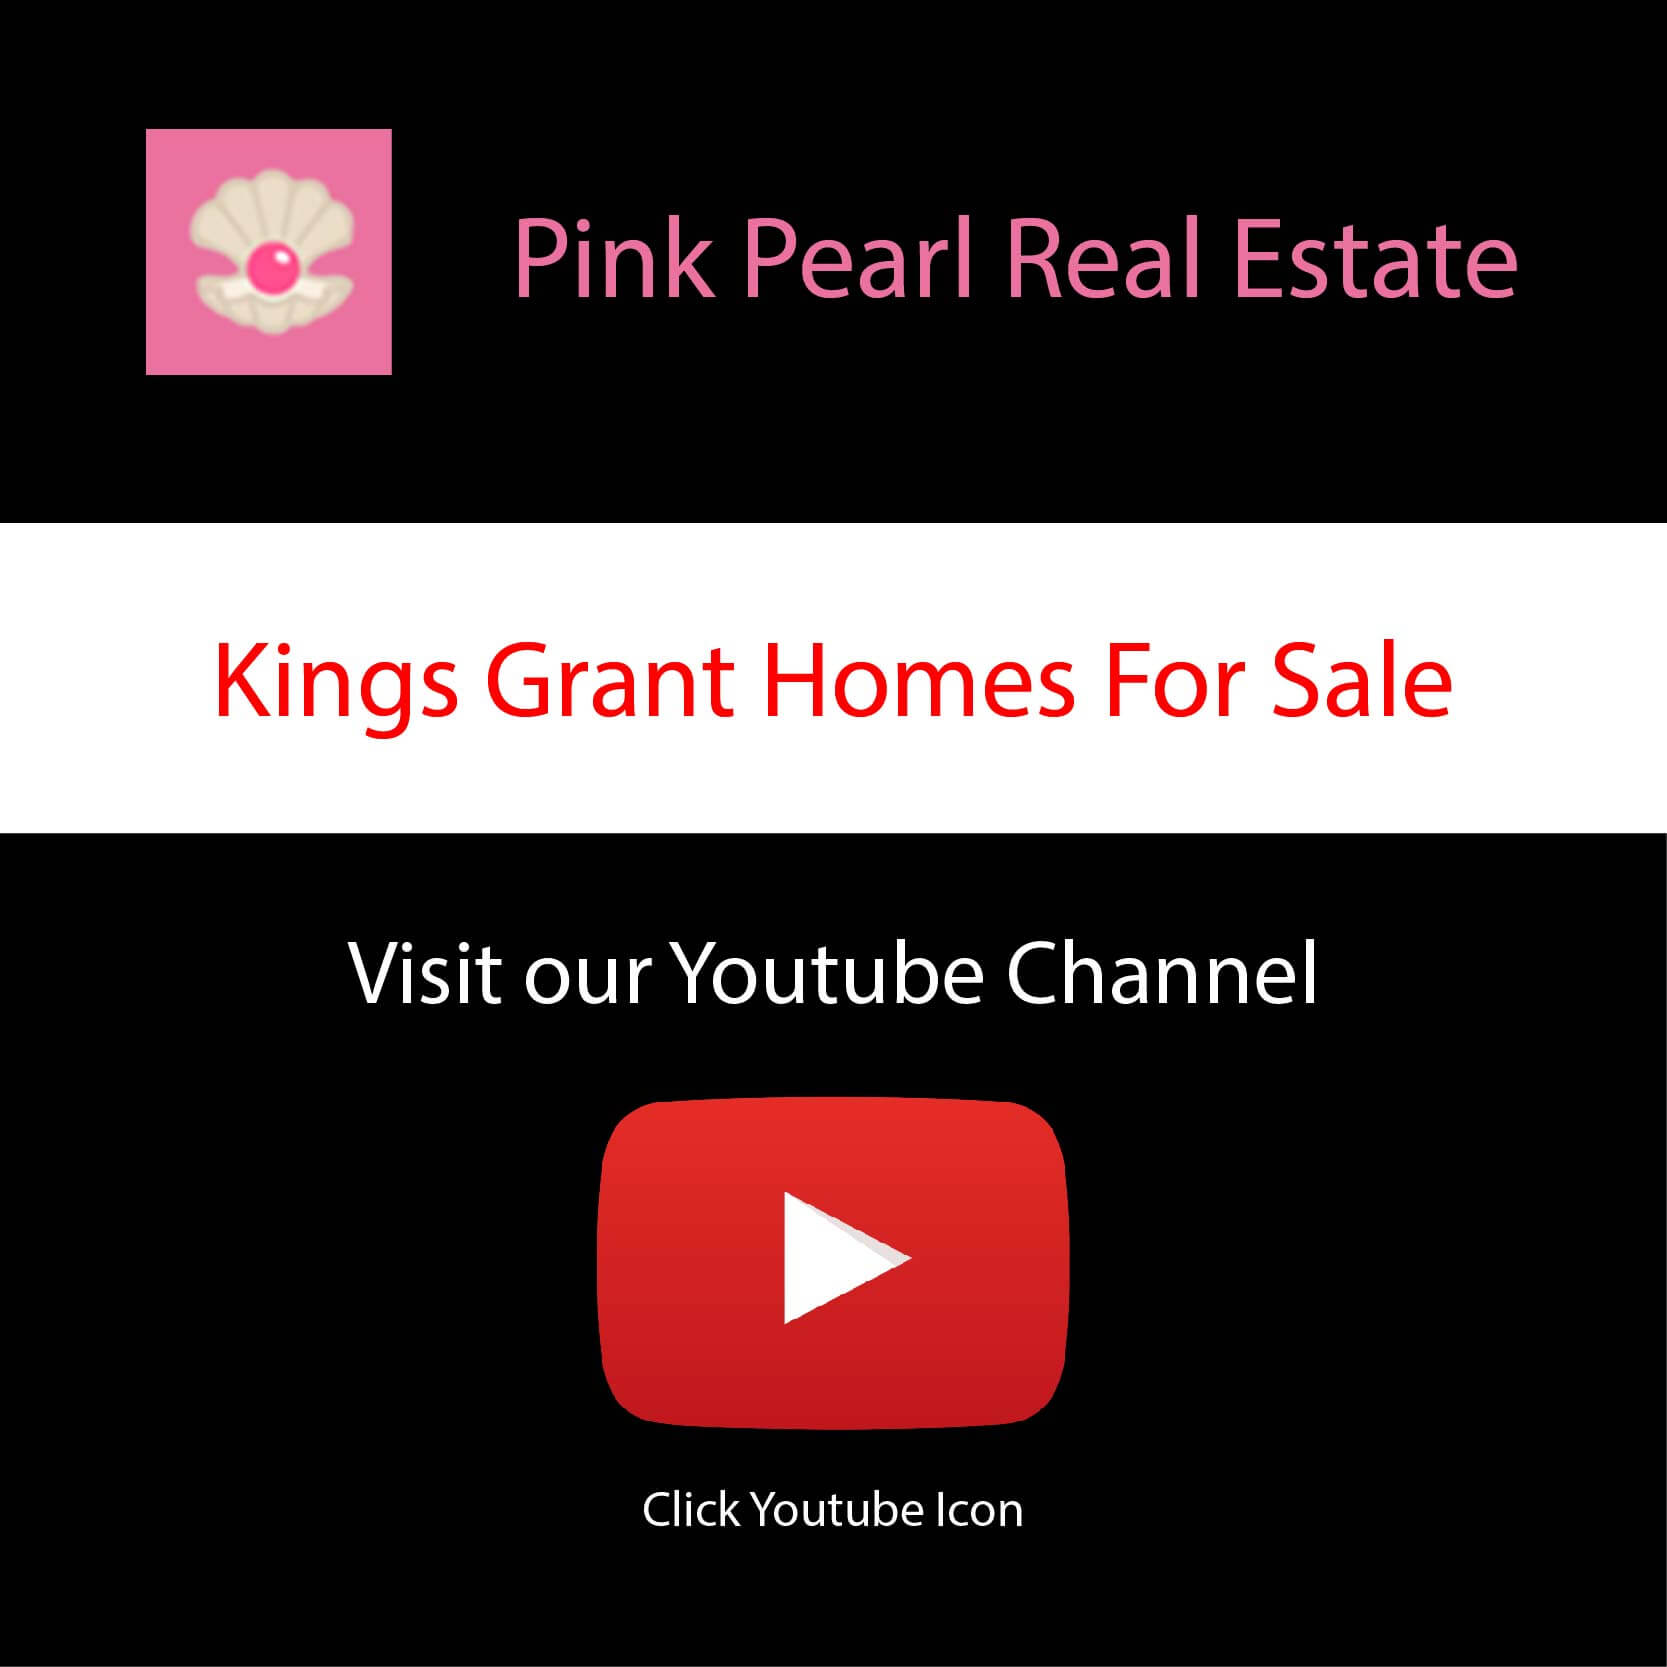 Visit Kings Grant Homes For Sale on Youtube